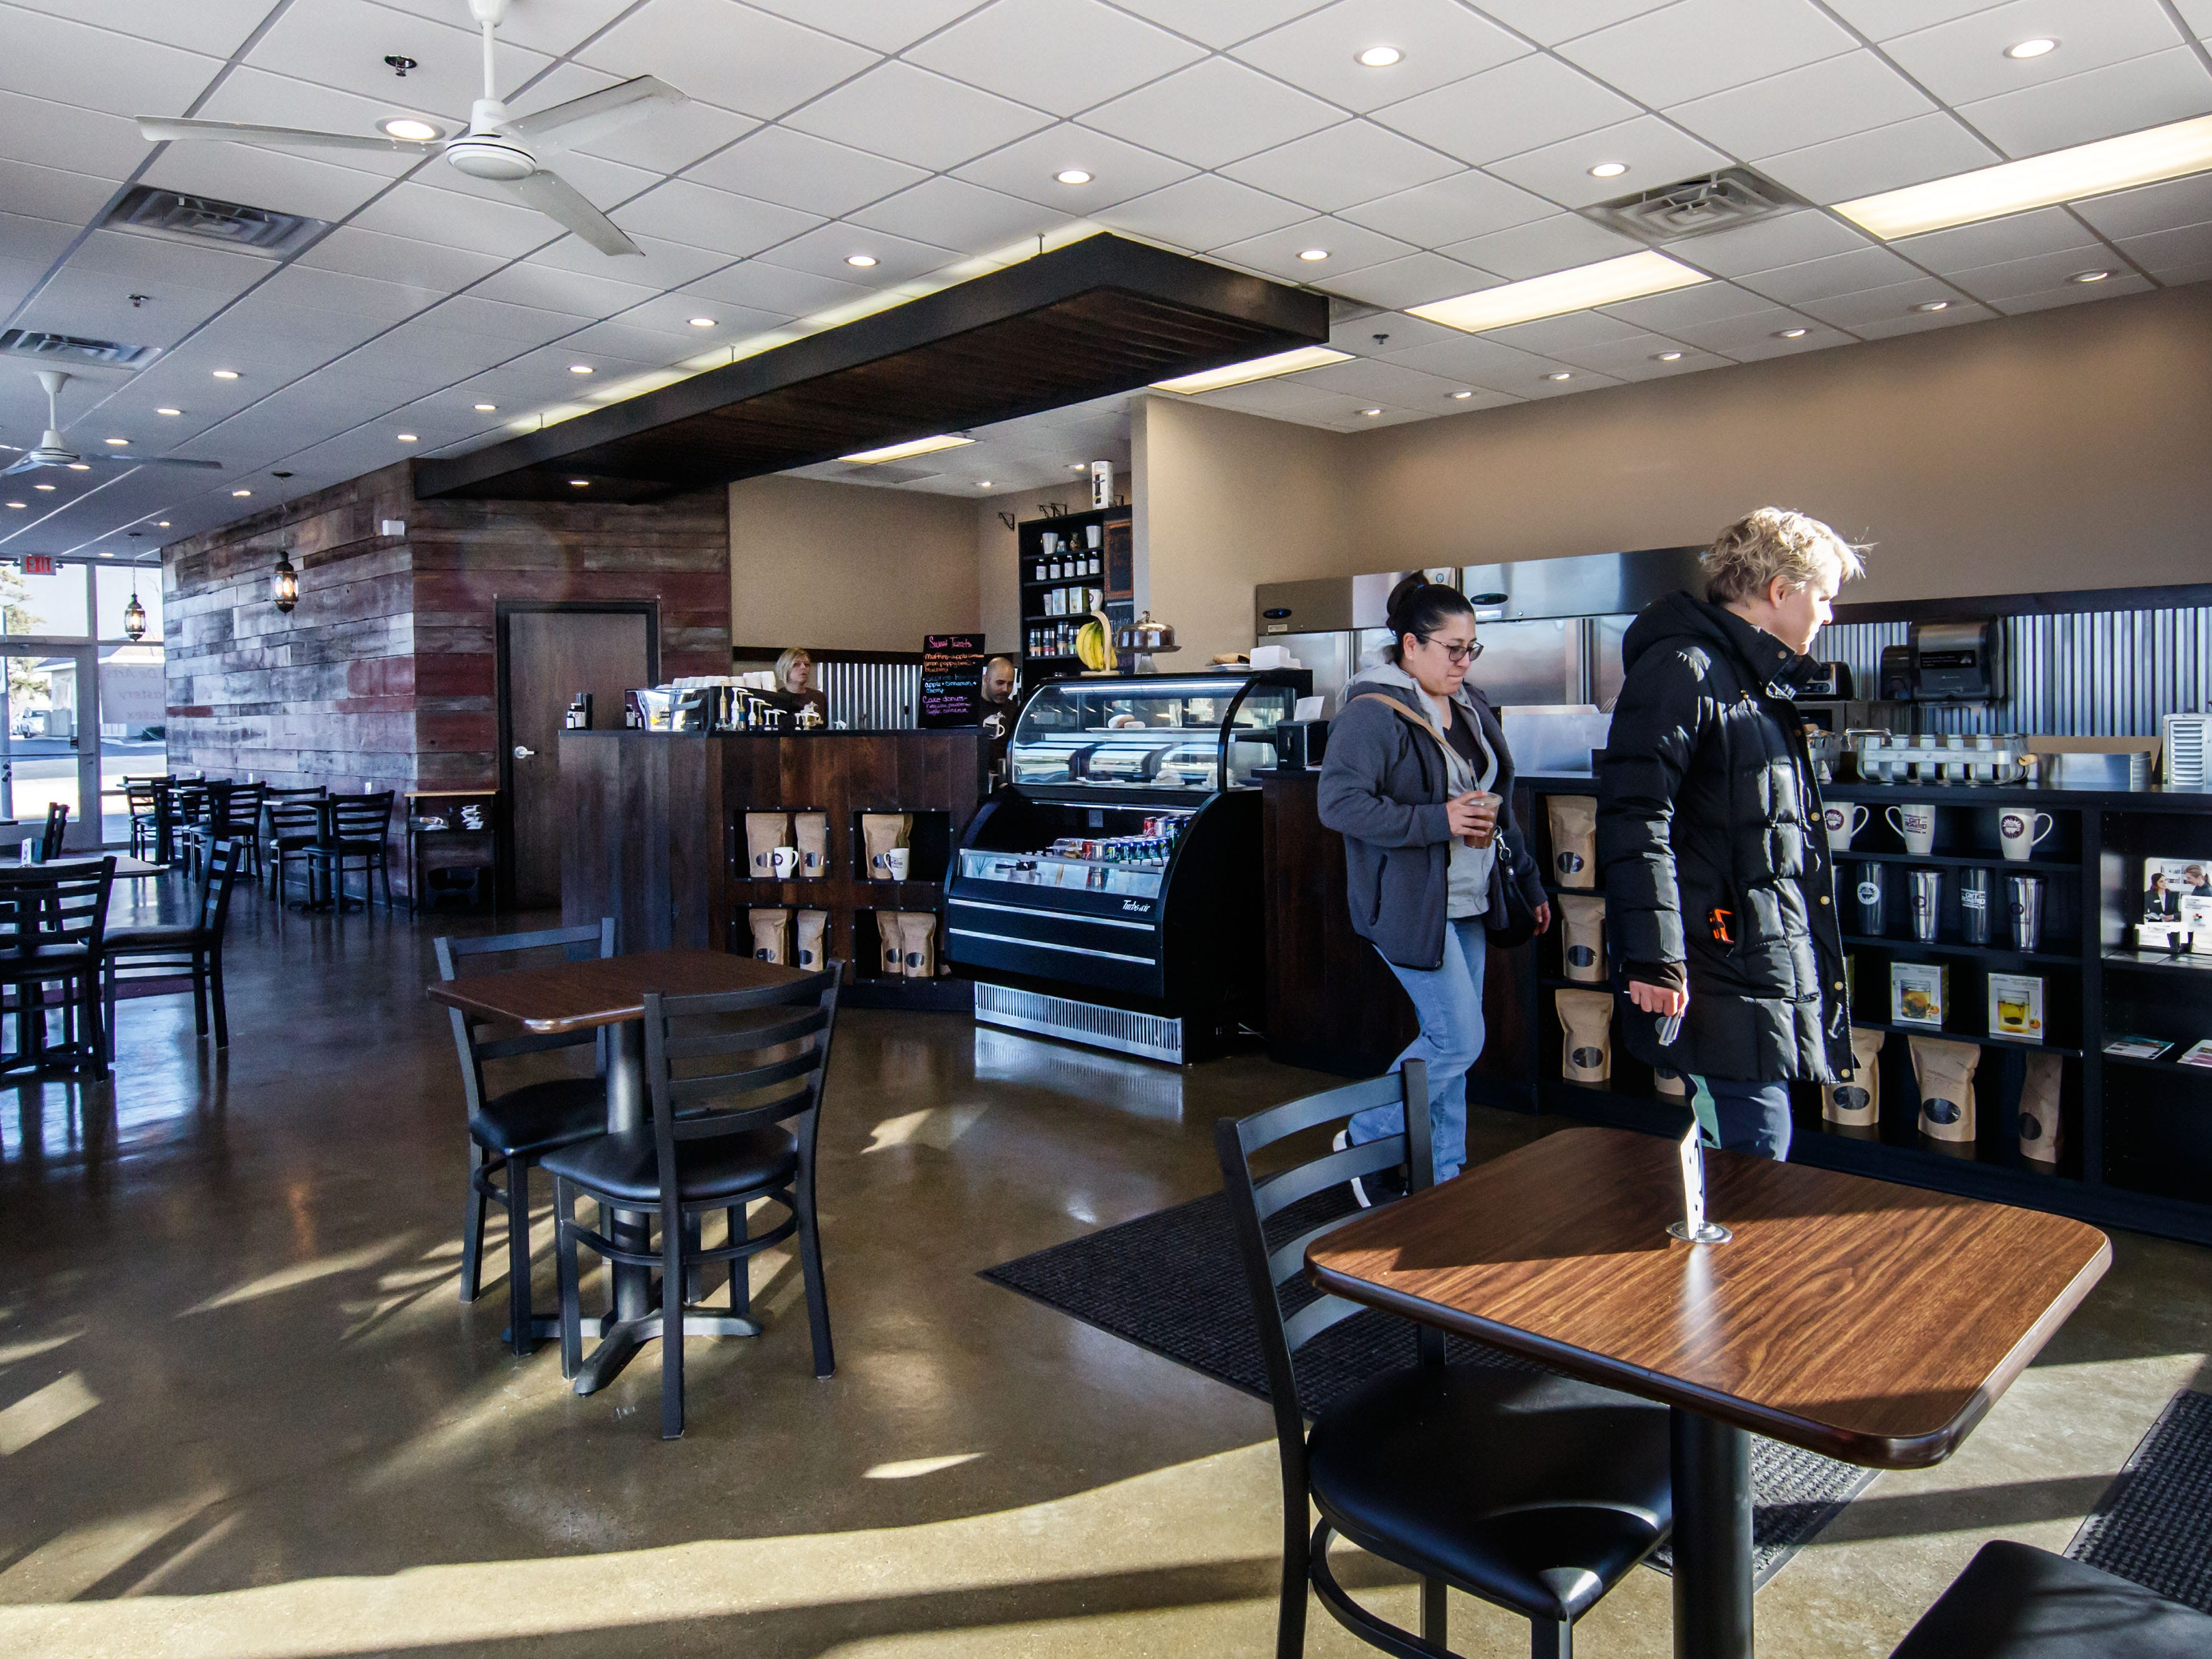 Cafe De Arts second location is open for business at the corner of Main Street and Waukesha Avenue in the Village of Sussex. The European coffee house and eatery is located in the space formerly occupied by Malabar Coast Coffee & Tea.